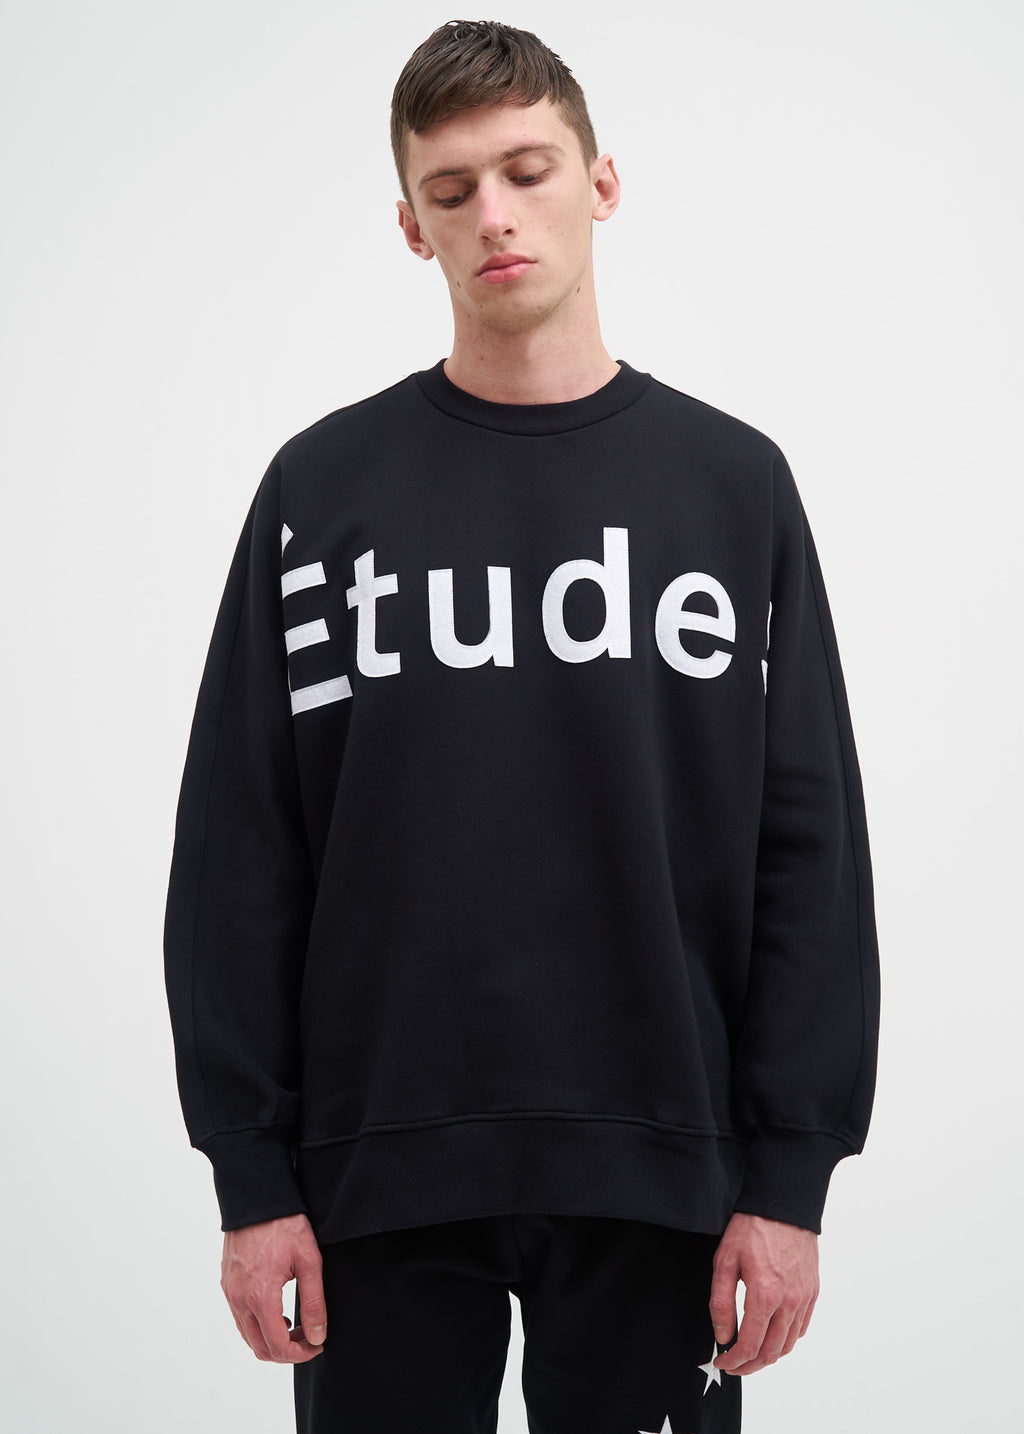 Black Color Etudes Sweatshirt